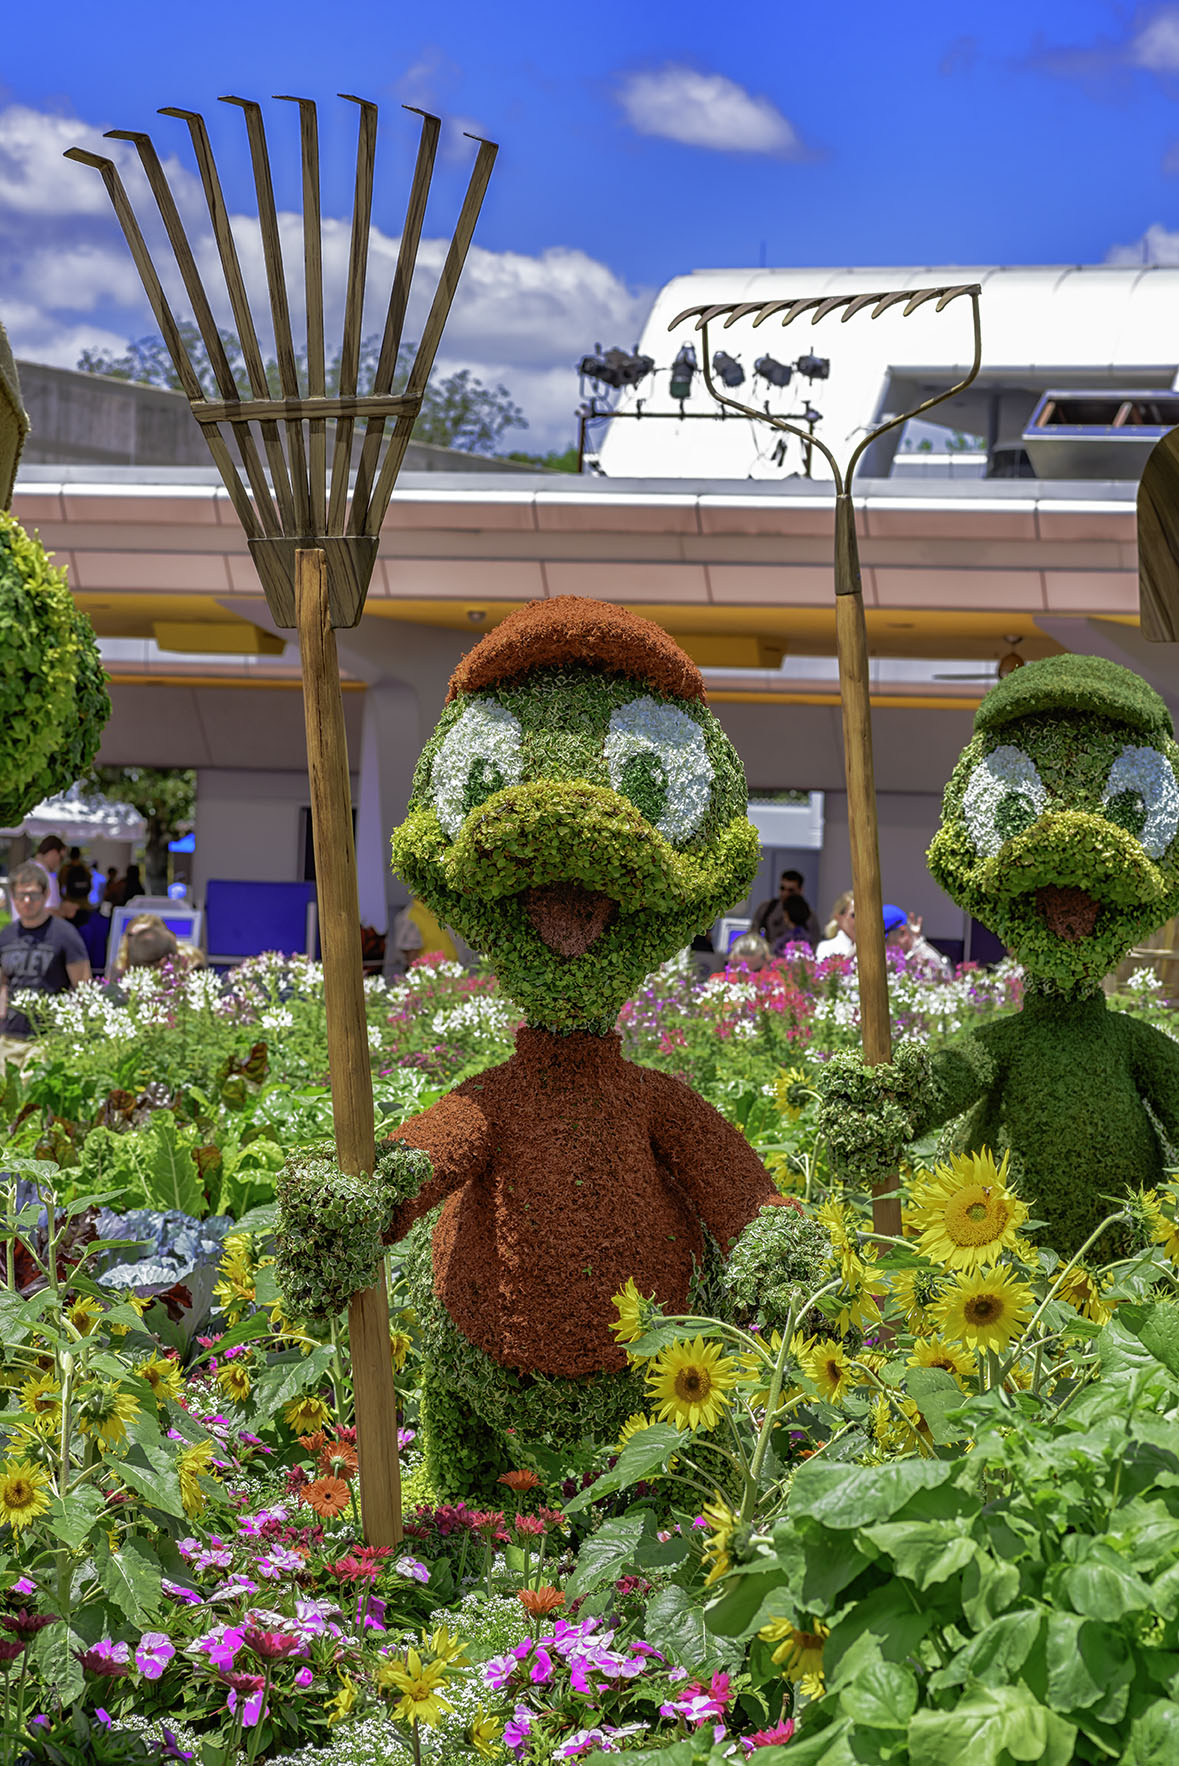 Epcot International Flower & Garden Festival - This is an annual fun filled event, next event is March 1 to May 29, 2017